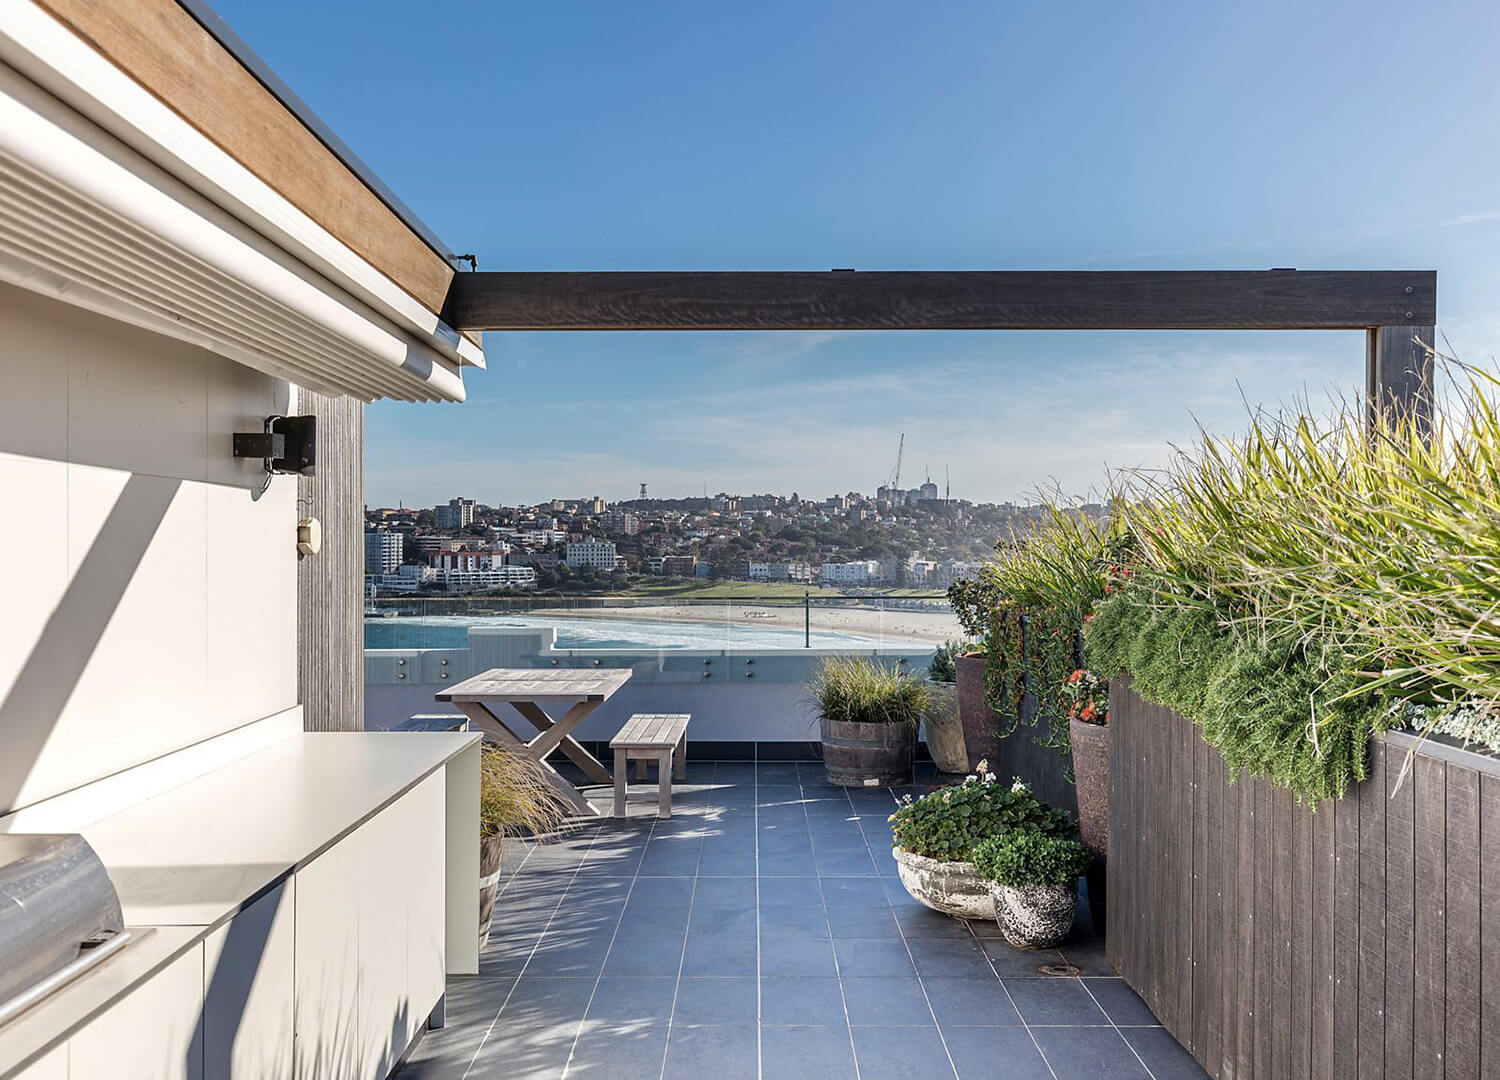 est living open house bondi apartment simon baker denny mcgrath.12